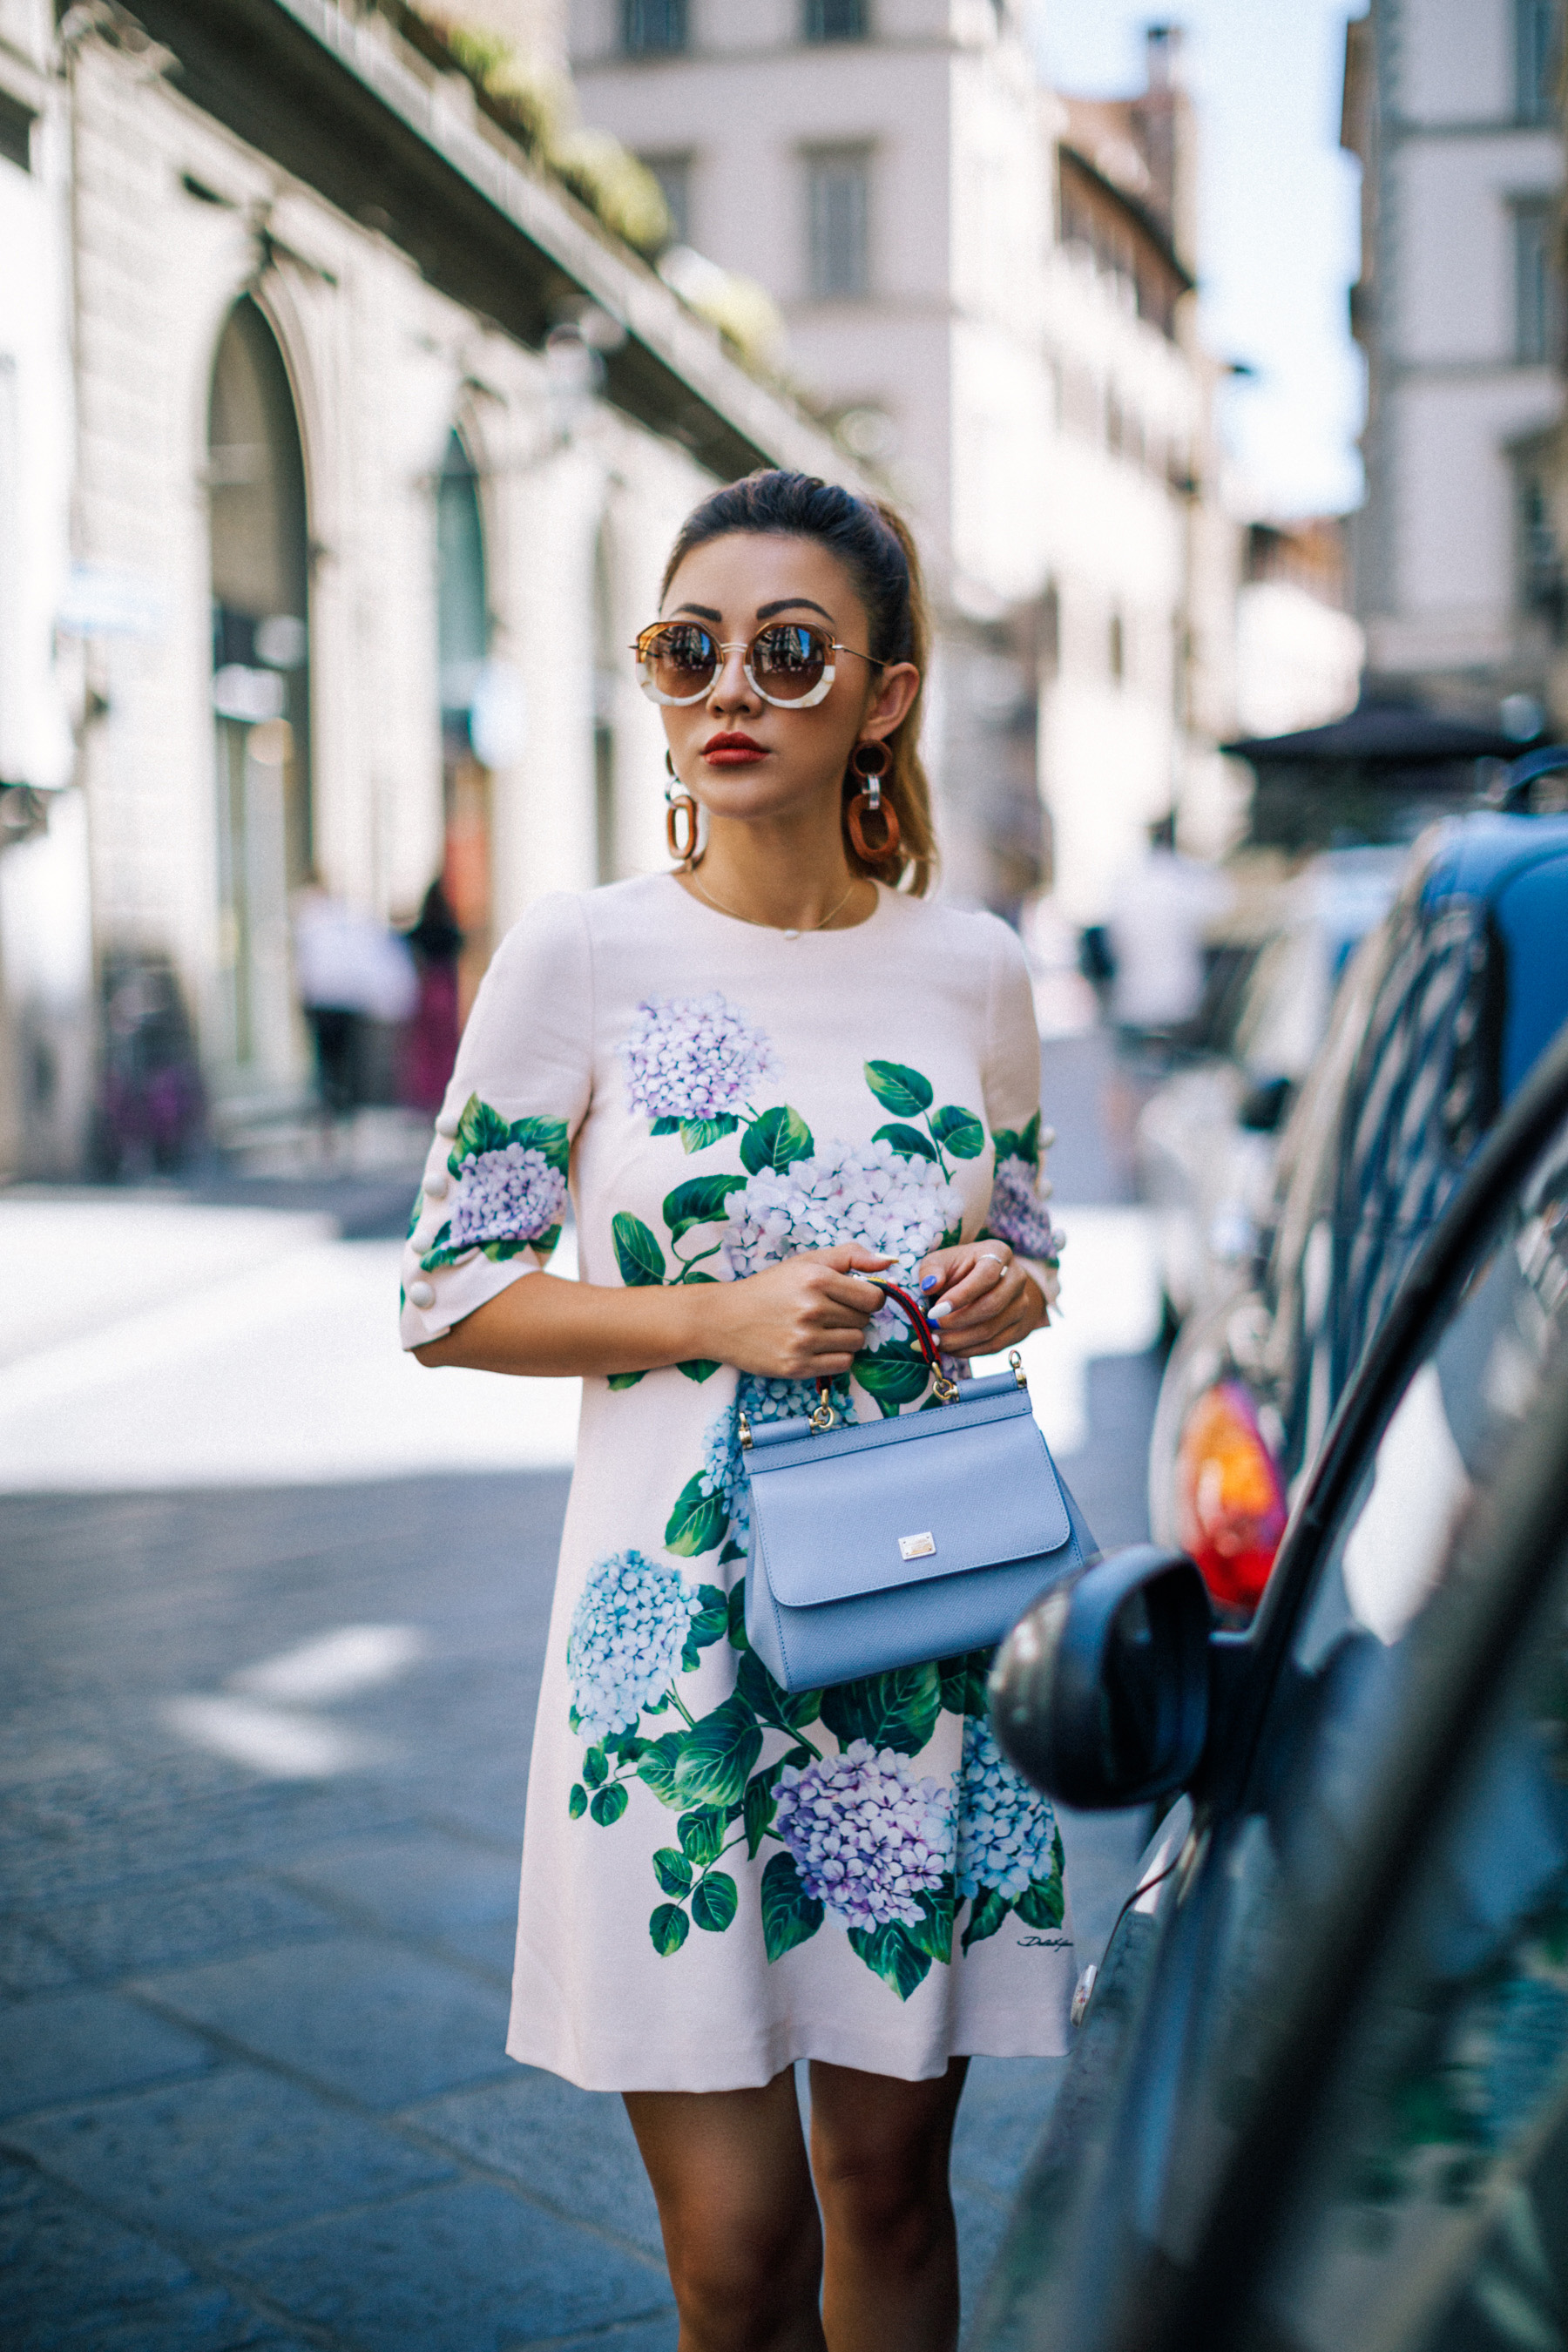 Dolce & Gabbana Hydrangea Shift Dress with Sunglasses // NotJessFashion.com